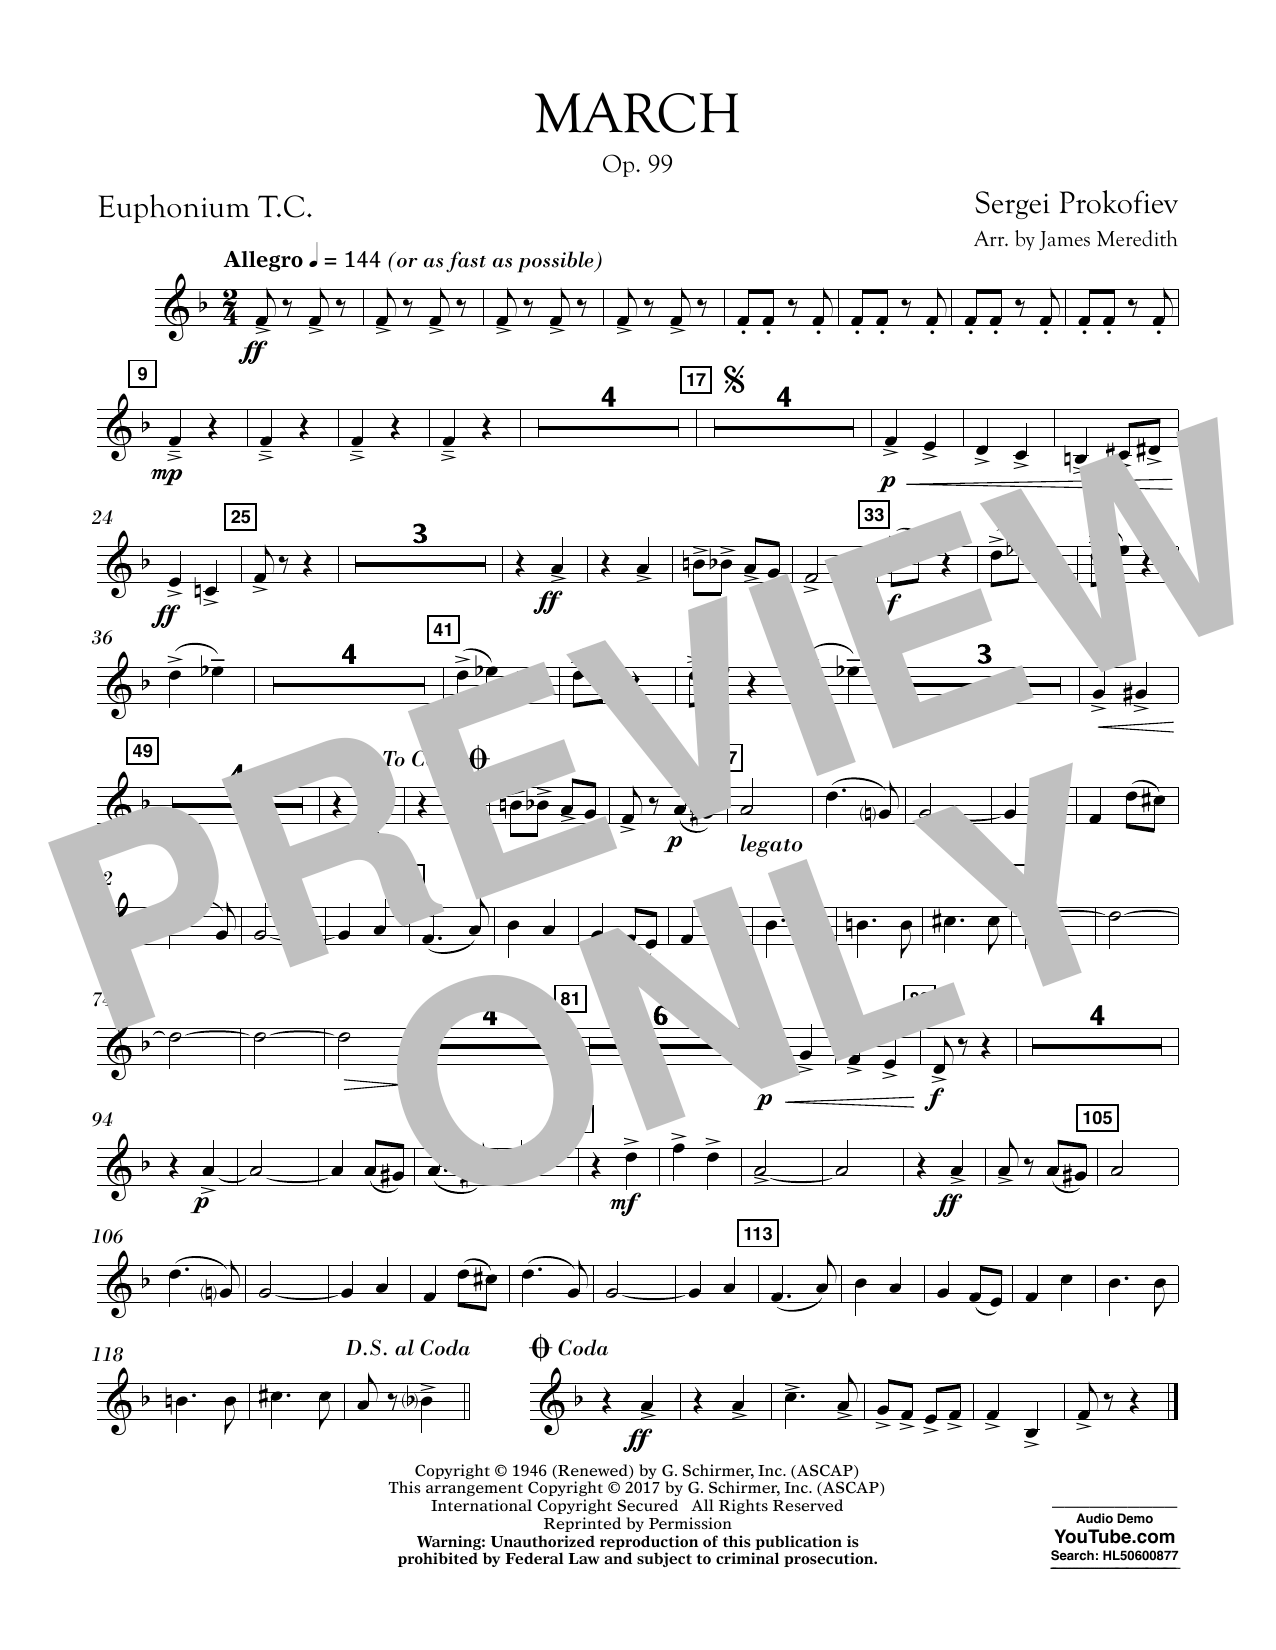 March, Op. 99 - Euphonium in Treble Clef Sheet Music